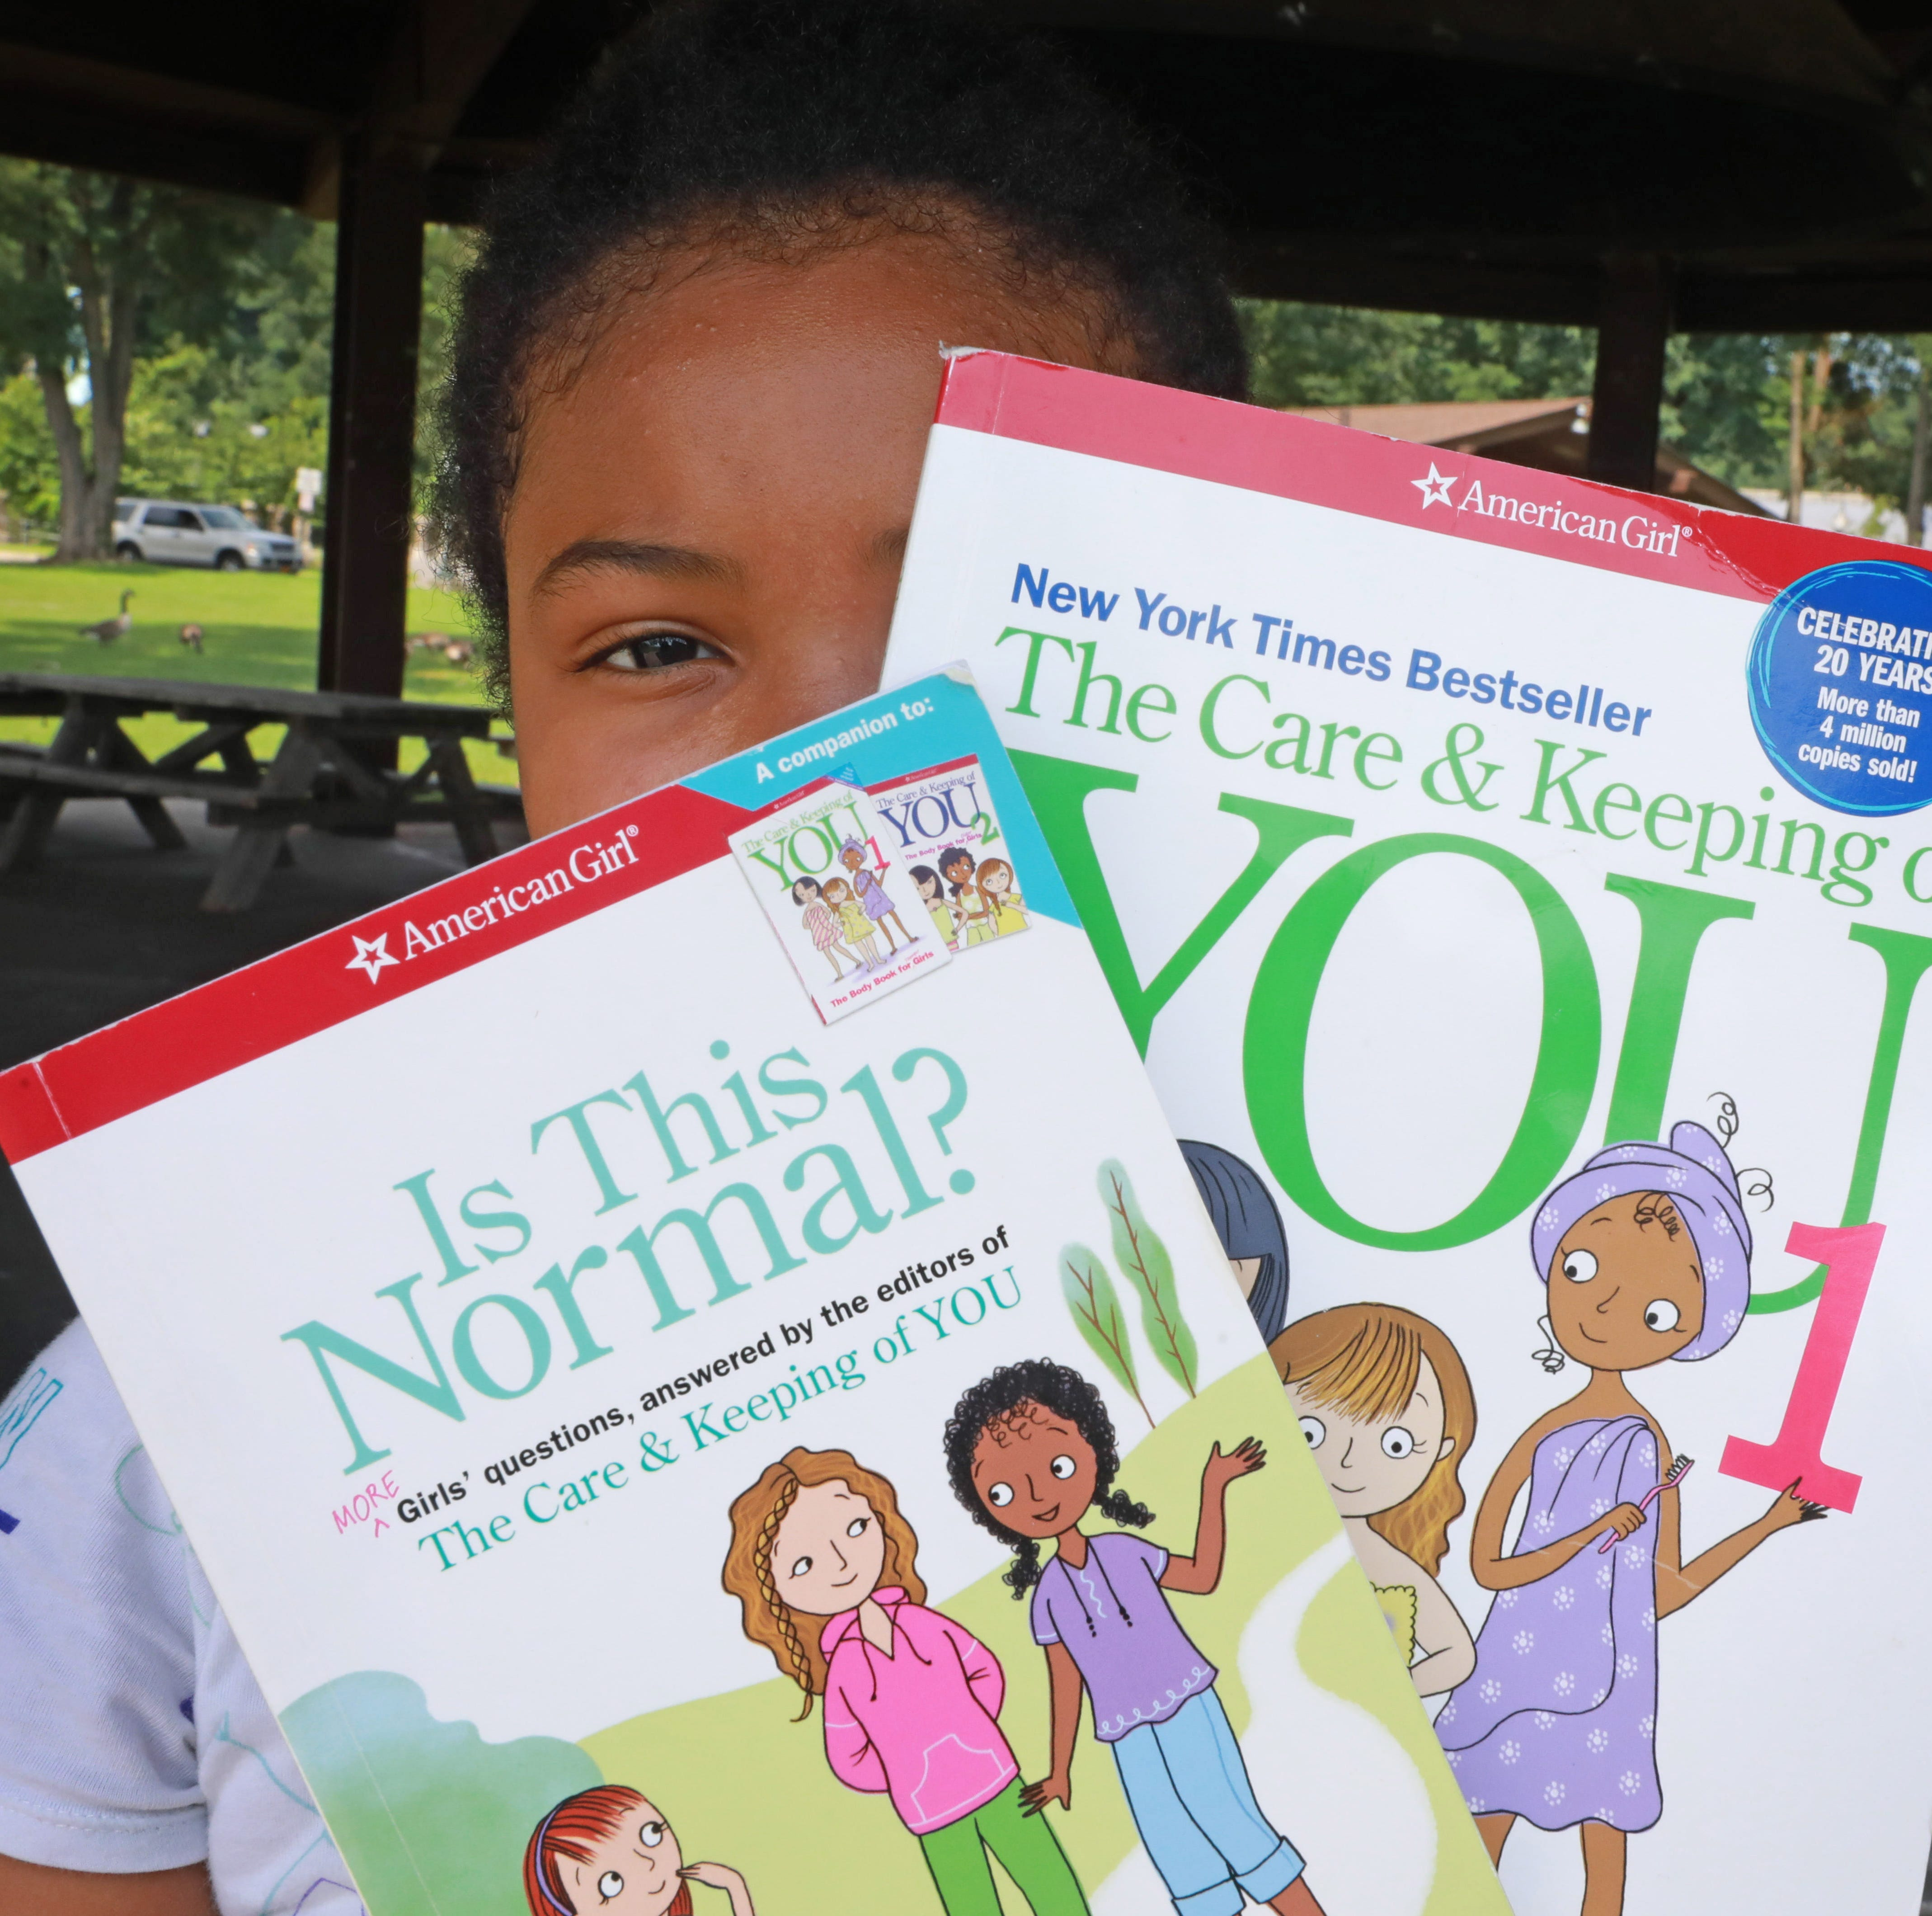 Kelly Mahecha,10, shows off the books she has been reading about becoming a tween at Riverfront Green Park in Peekskill Aug. 3, 2018. Shantae Mahecha, a high school teacher and a Peekskill resident plans to have a Period Party for her daughter.